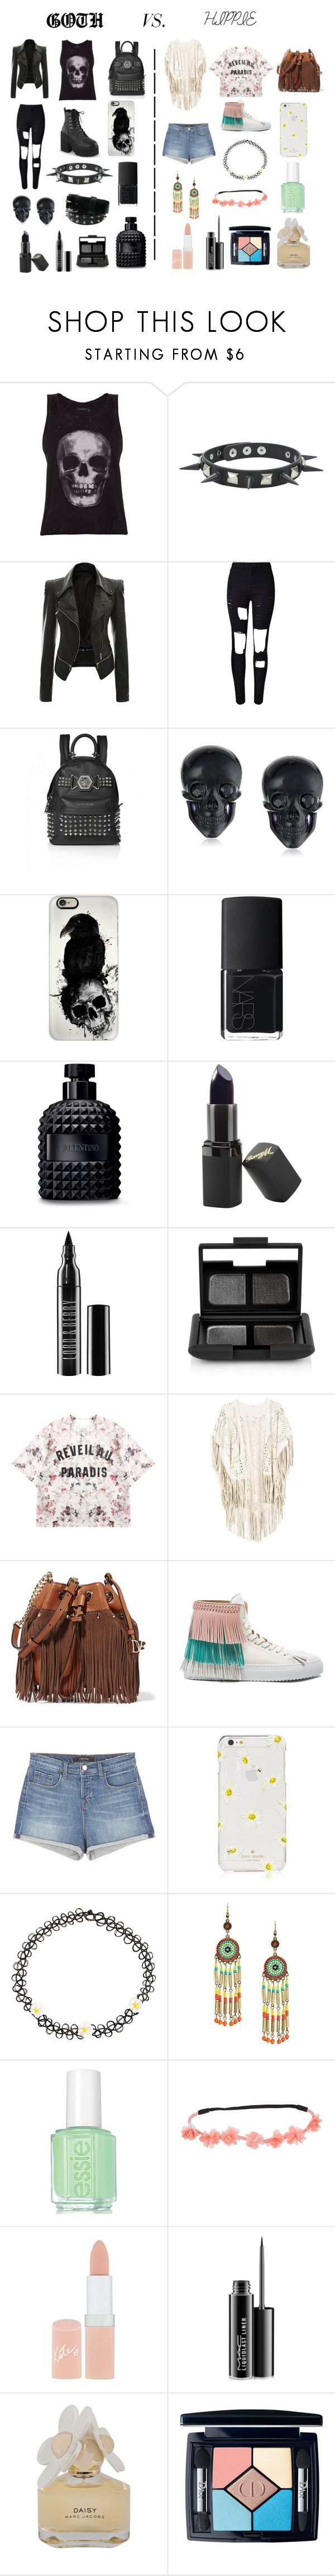 """""""Goth vs. Hippie"""" by gizemgonenc ❤ liked on Polyvore featuring ElevenParis, Hot Topic, WithChic, Tarina Tarantino, Casetify, NARS Cosmetics, Valentino, Barry M, Lord & Berry and Momewear"""